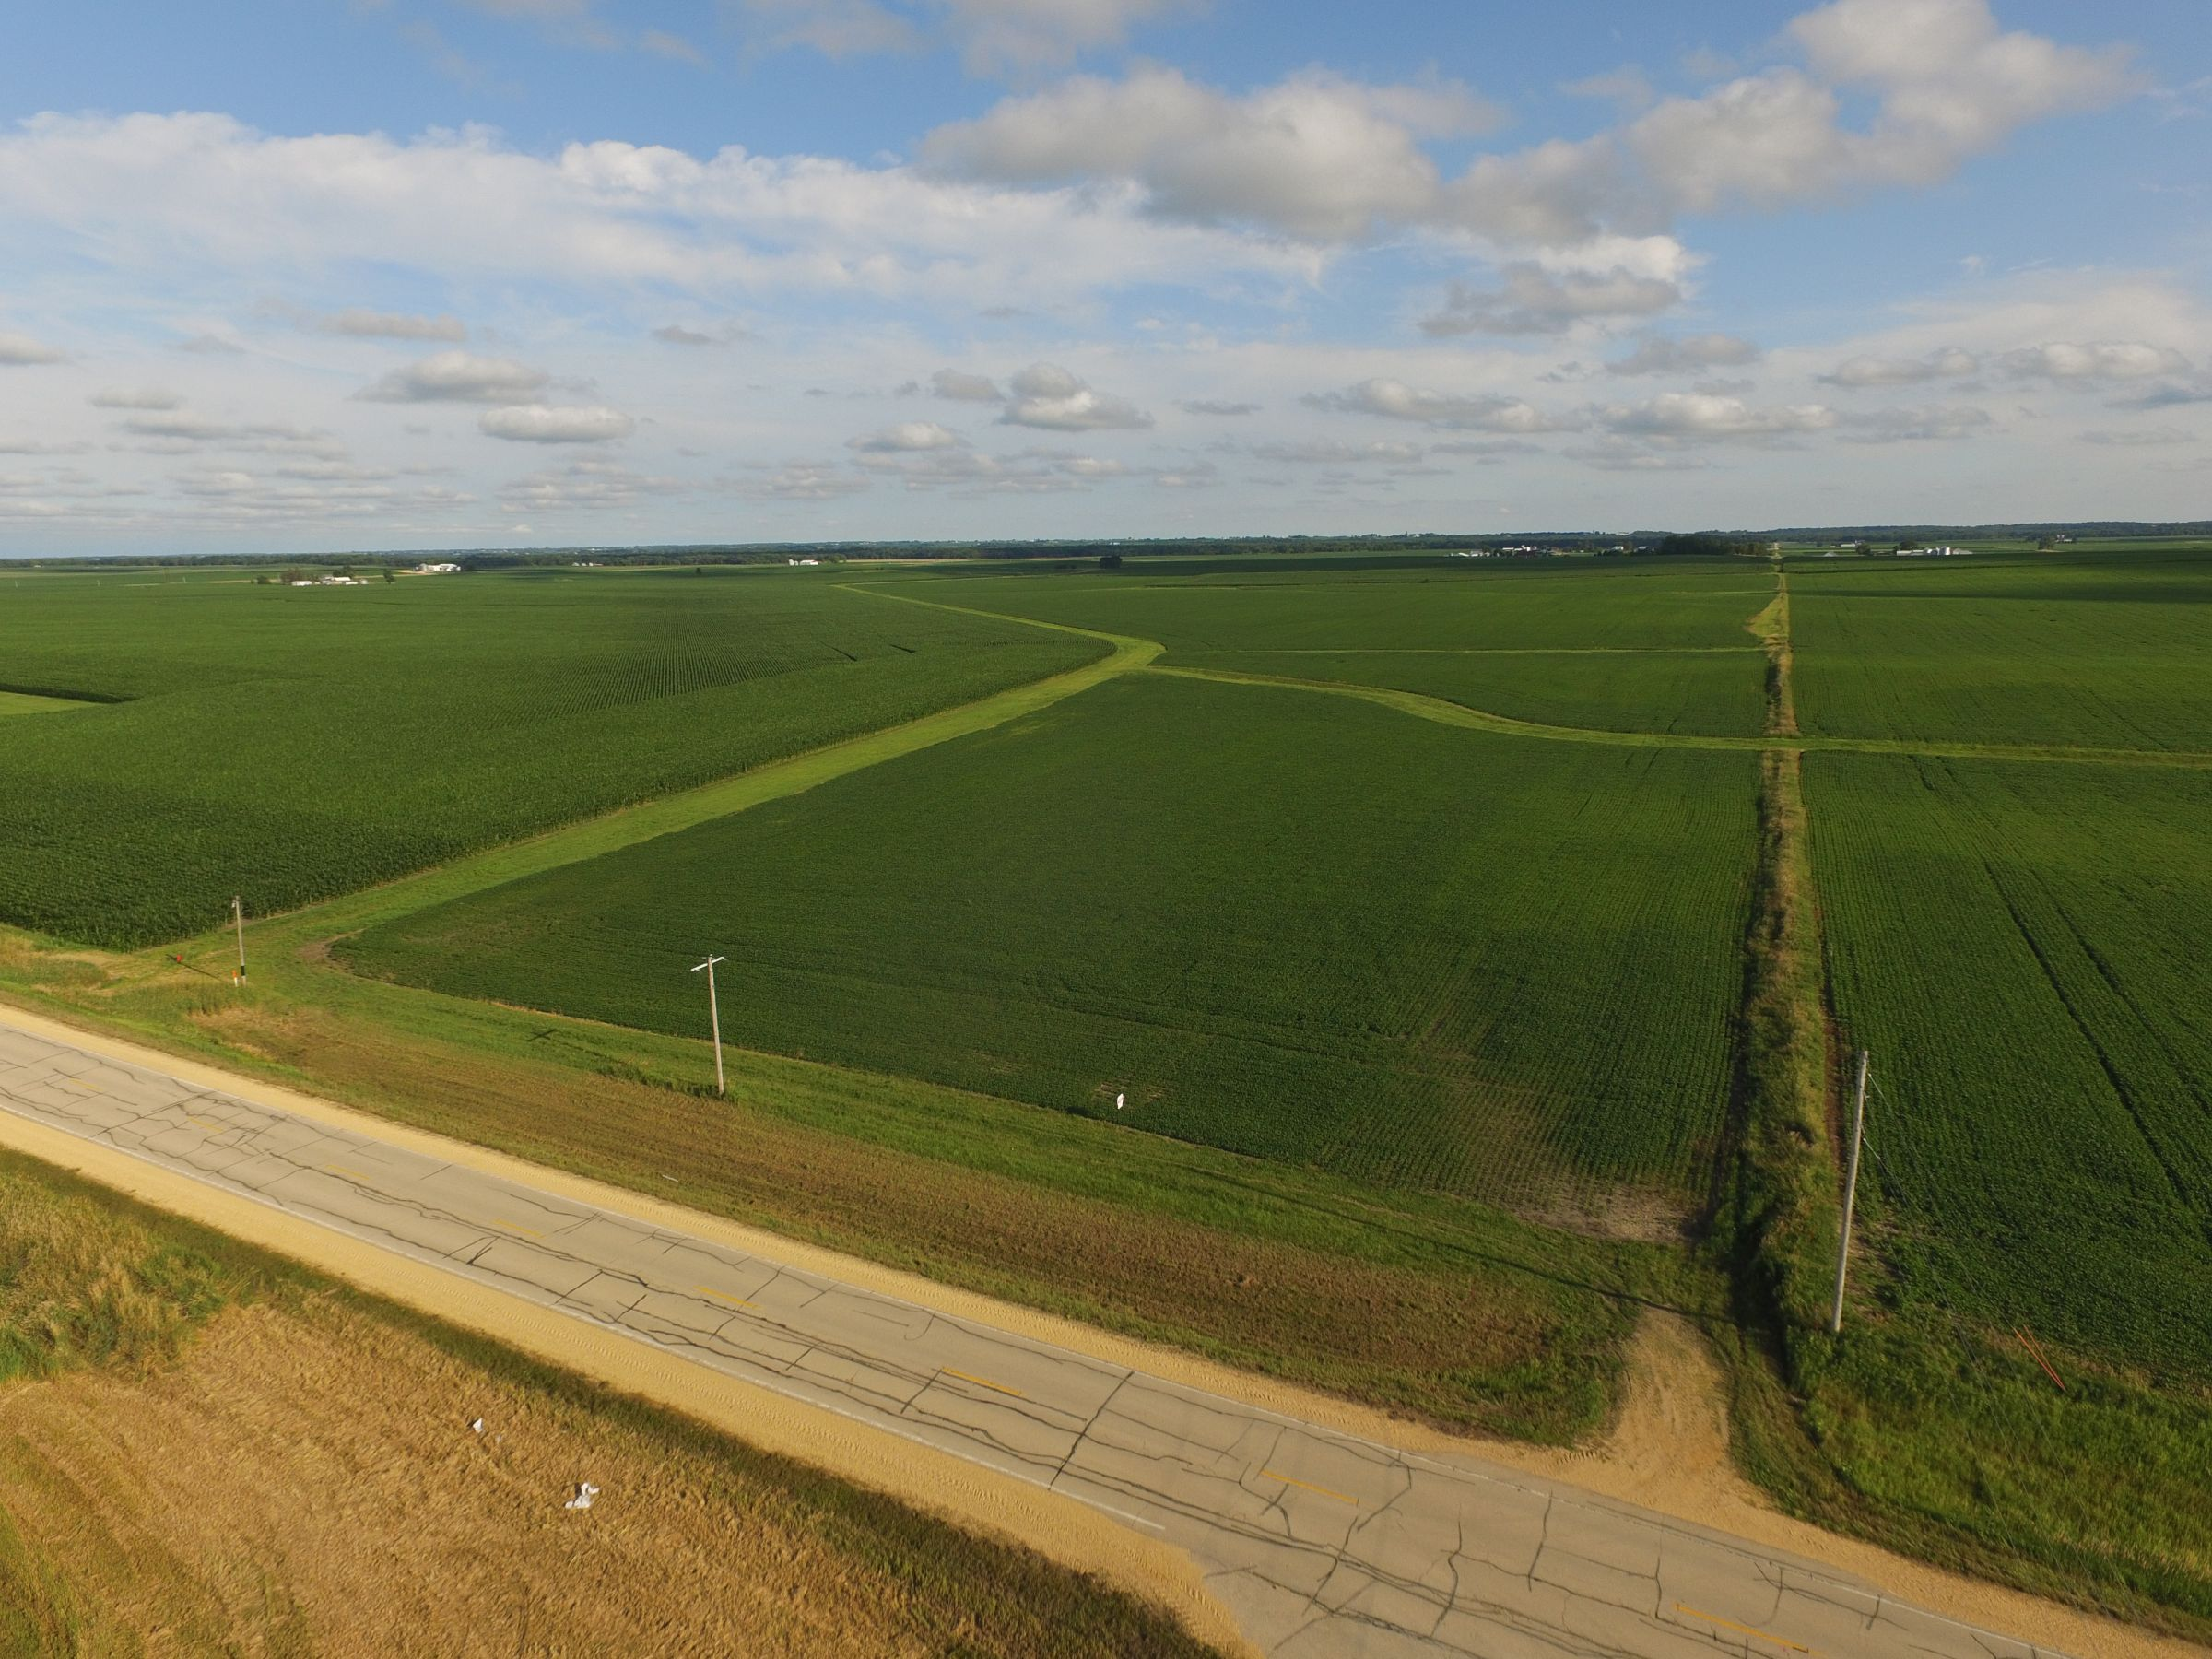 auctions-land-clinton-county-iowa-210-acres-listing-number-15628-0-2021-07-12-143507.JPG